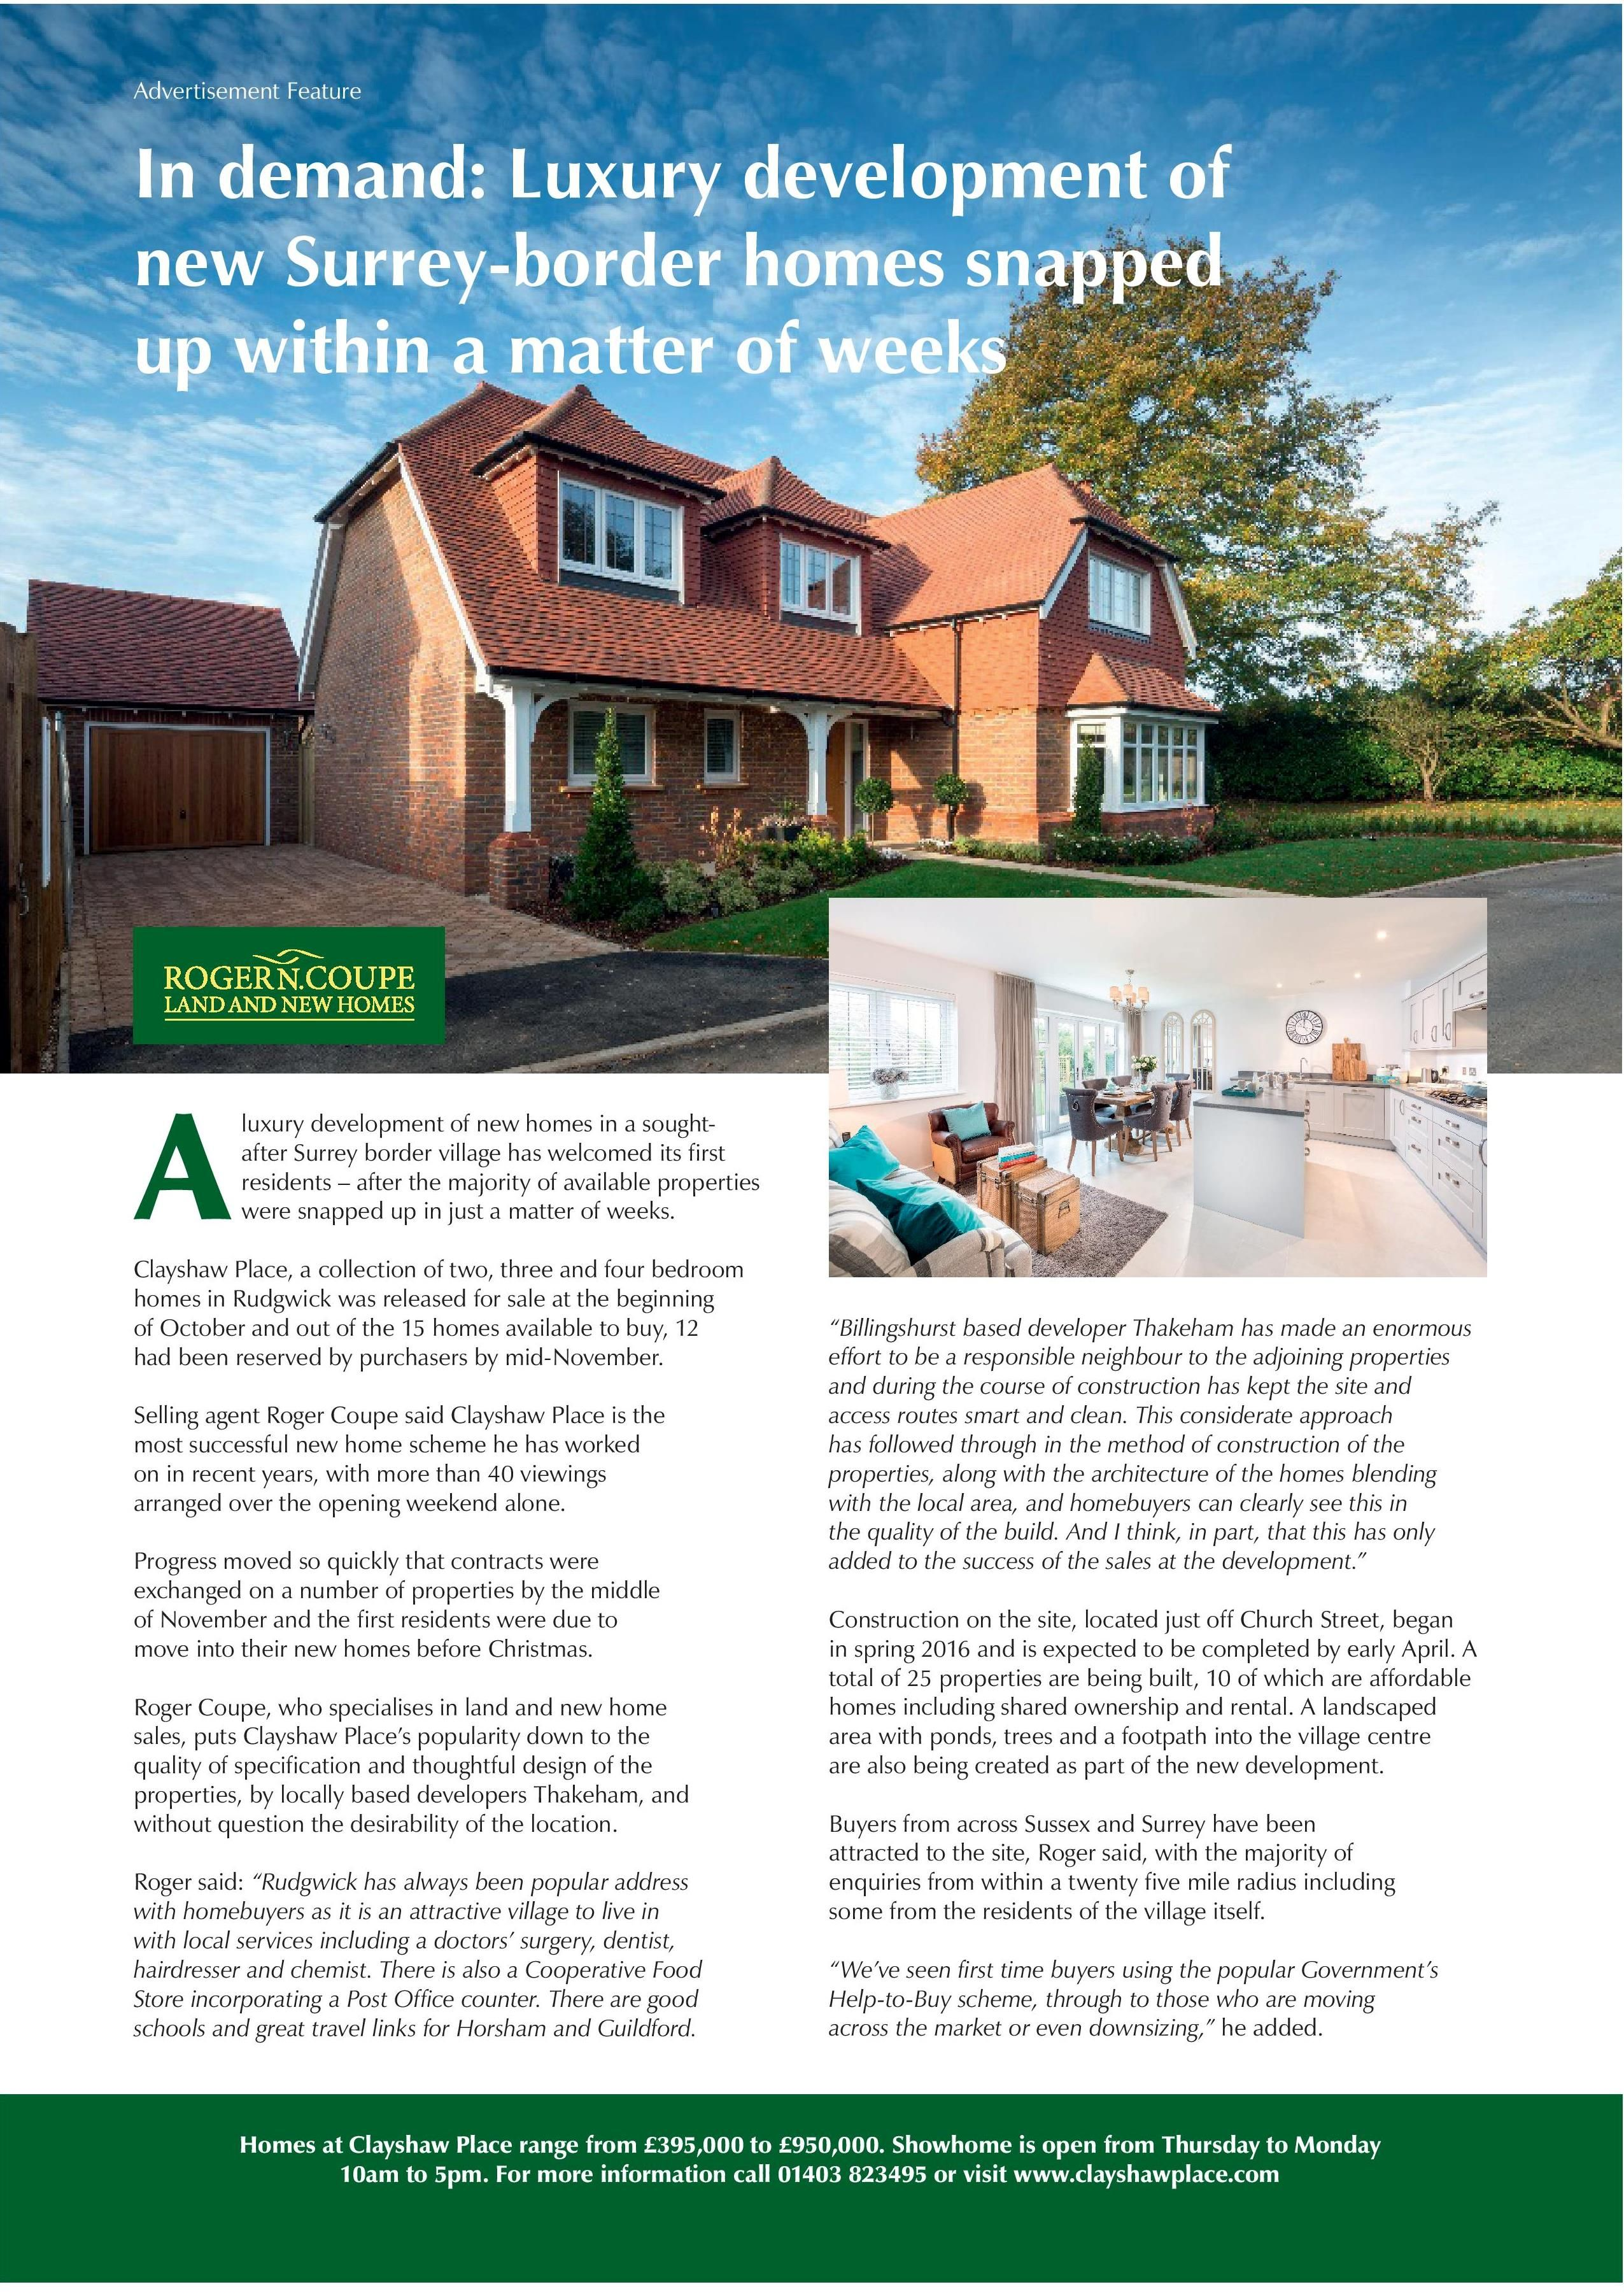 Only 2 properties remaining at Thakeham's stunning new development in Rudgwick